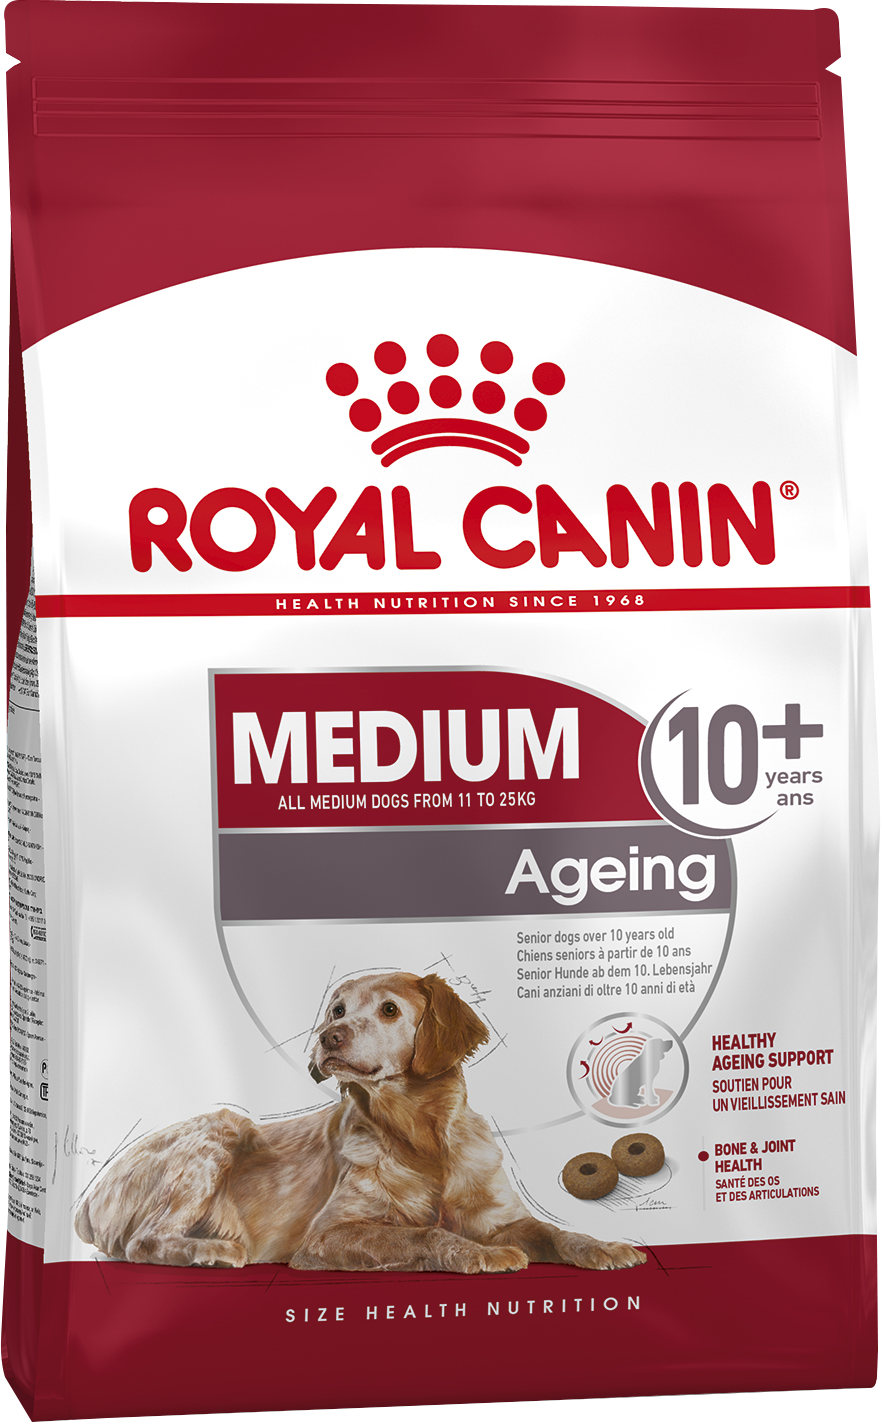 ROYAL CANIN Medium Ageing 10+ - Корм для собак старше 10 лет